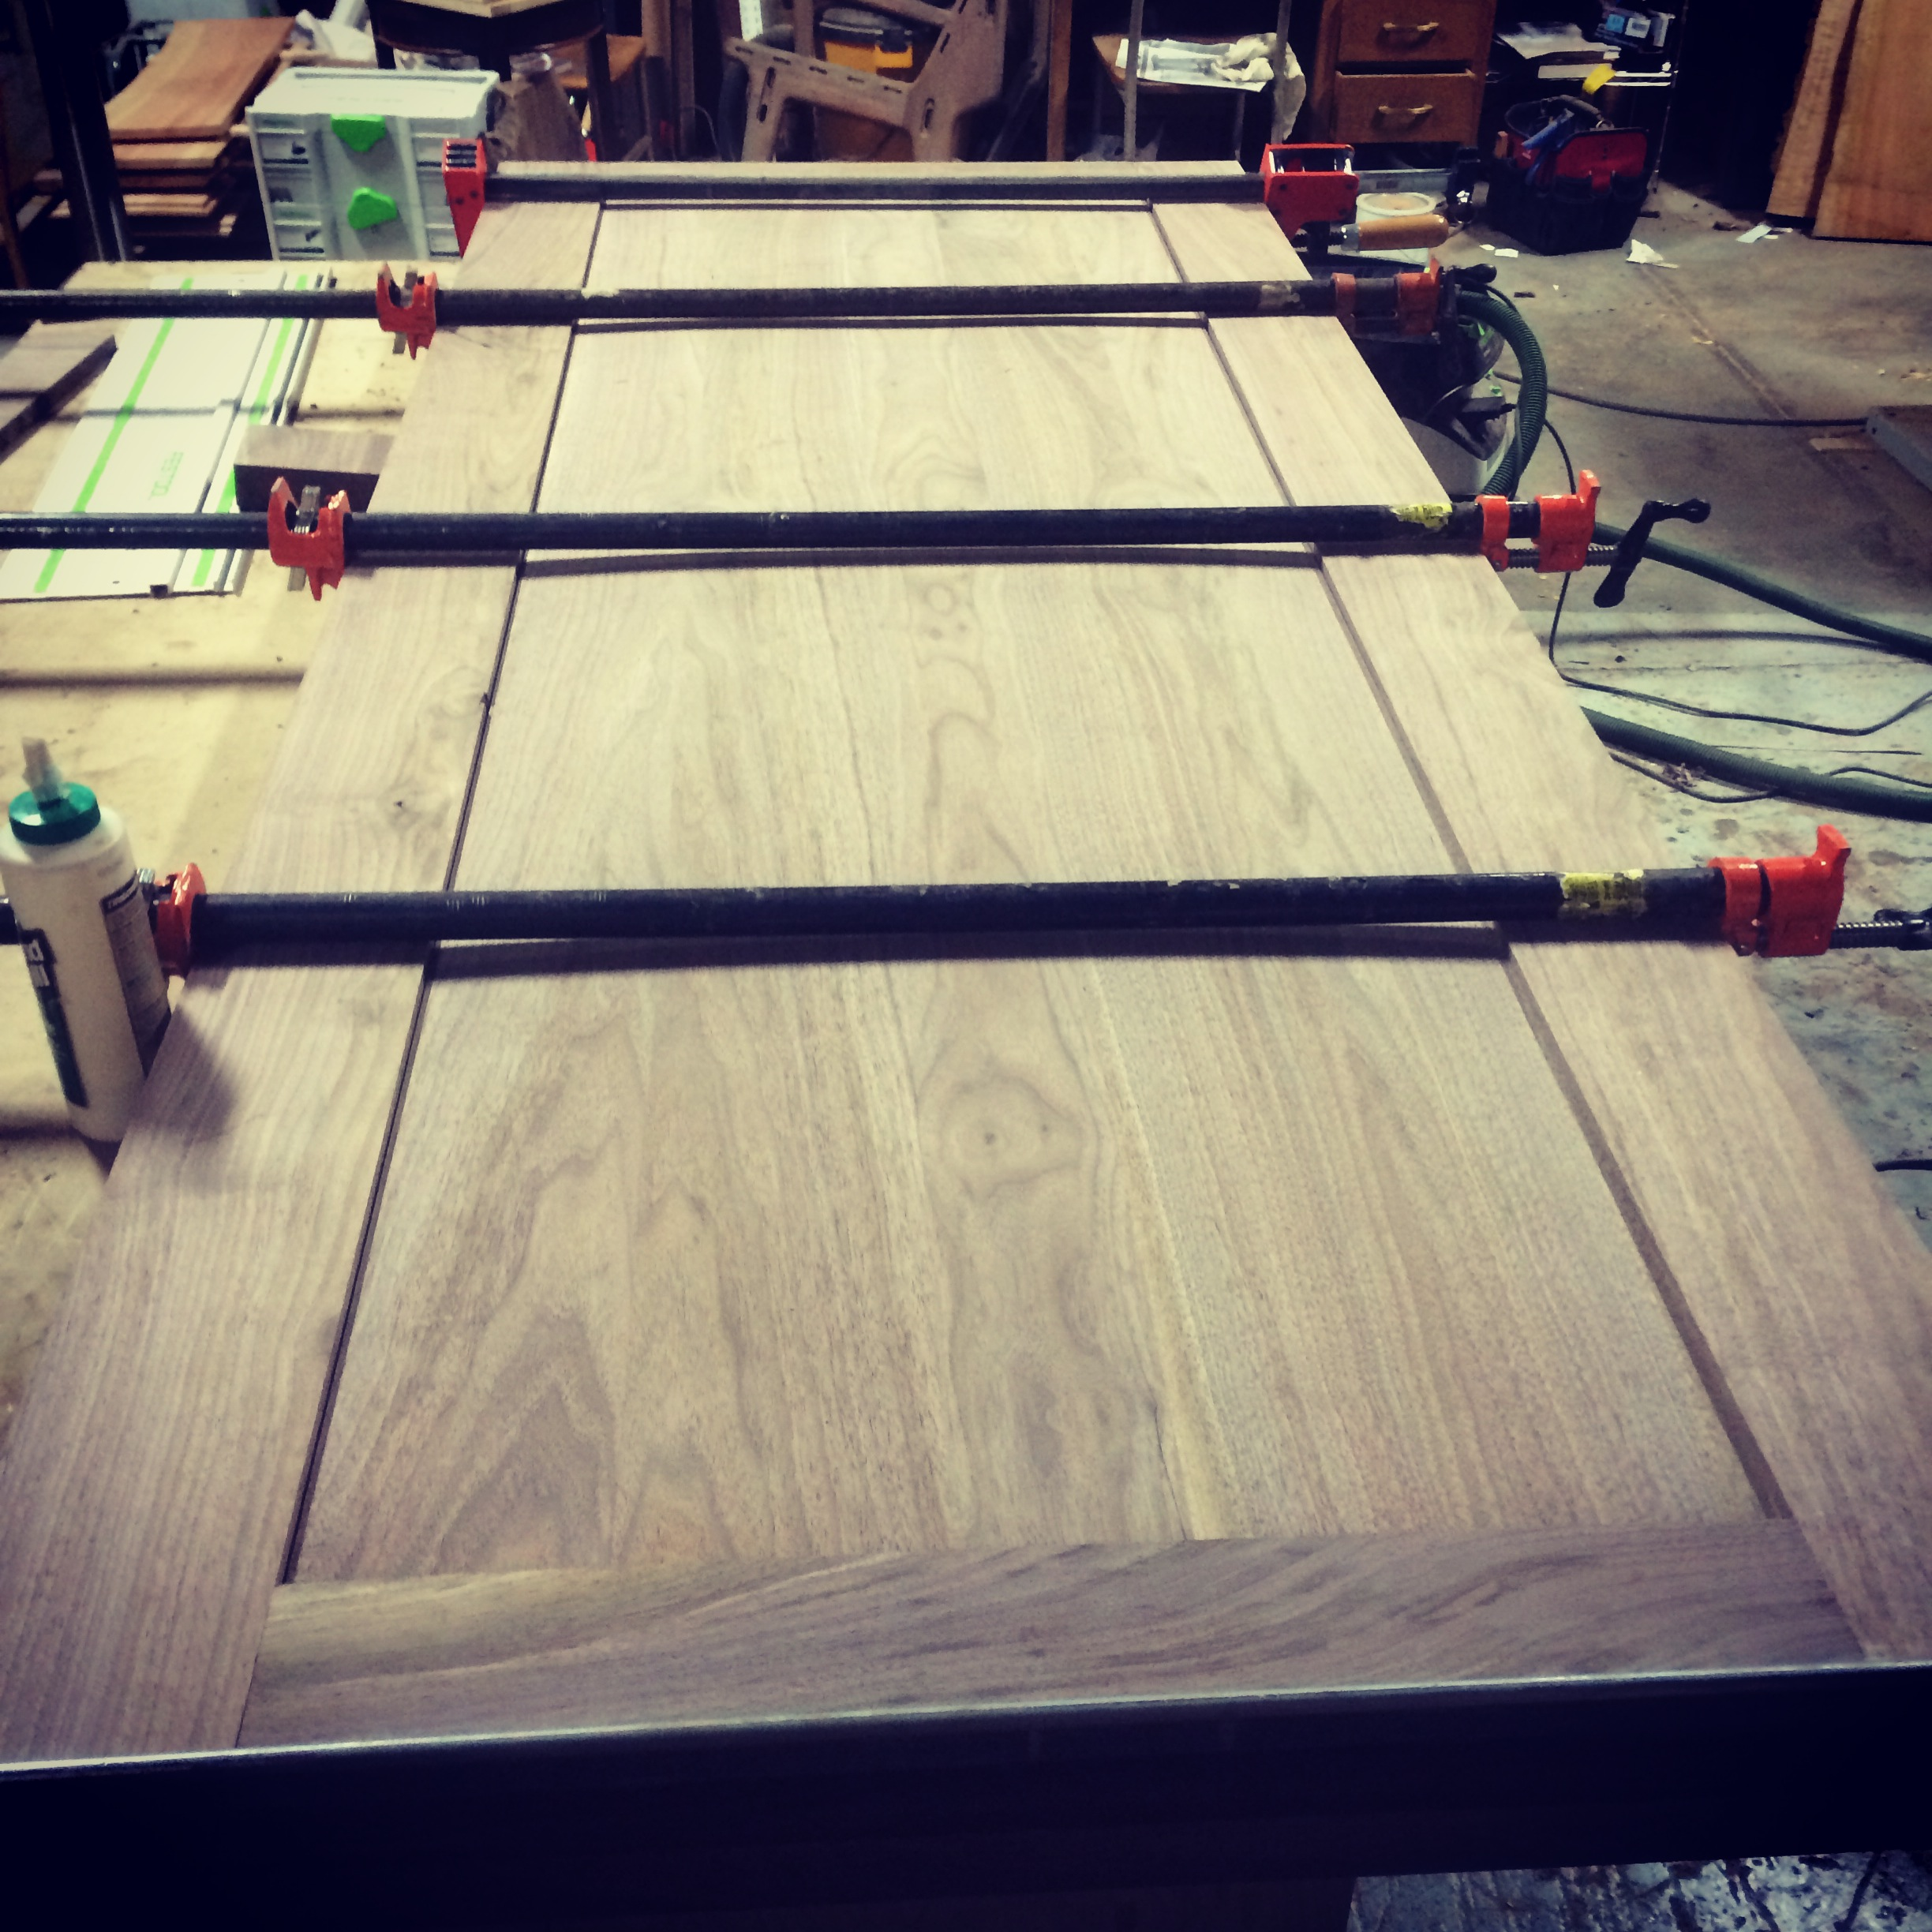 Once everything is resawed, milled down to size, and square we are ready to glue everything together.